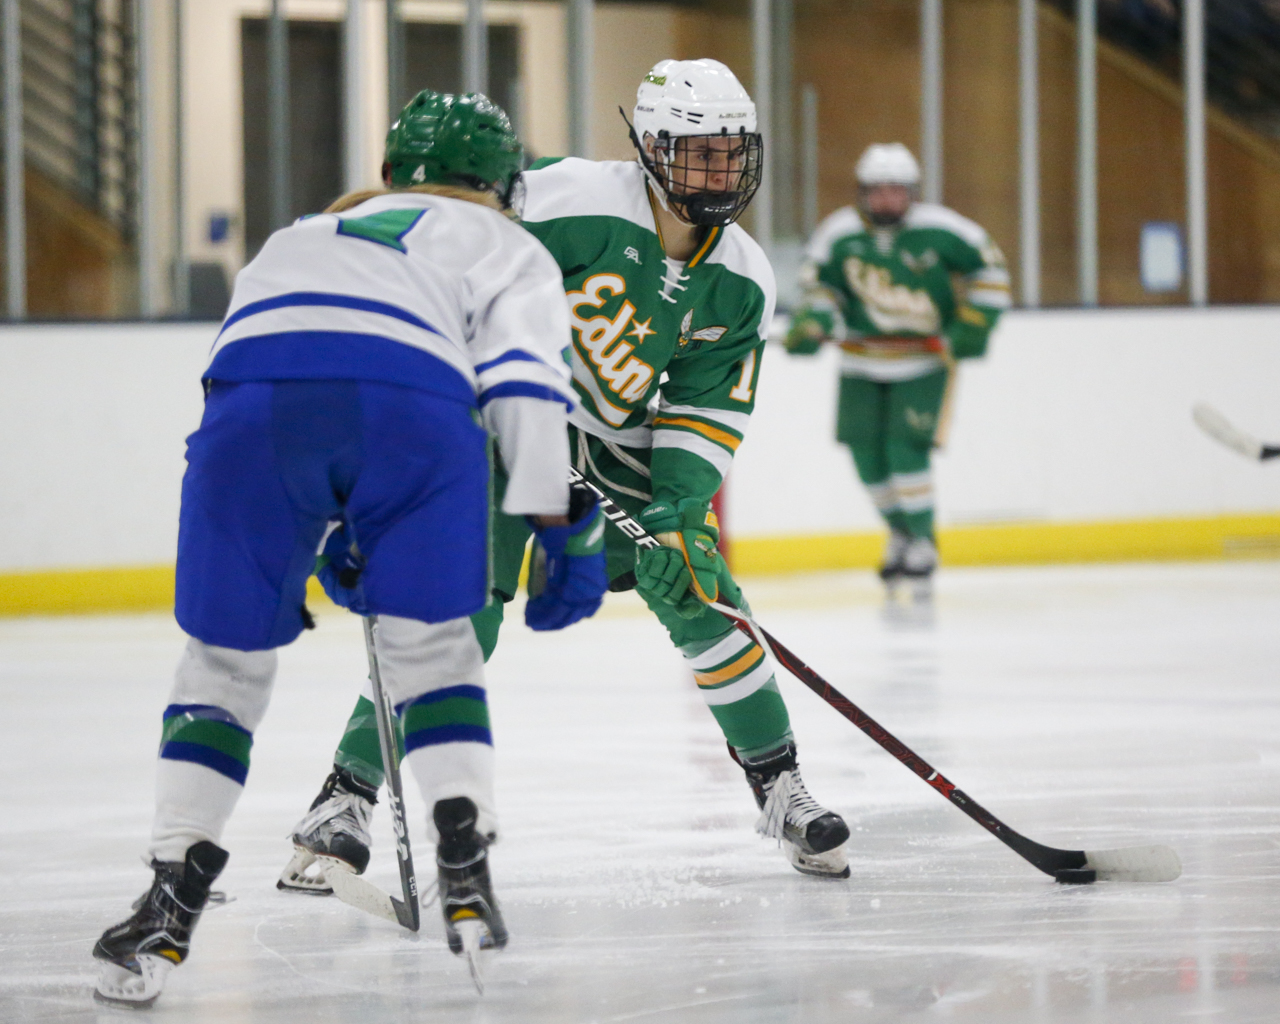 Edina's Emma Conner (16) carries the puck into the offensive zone against Blake Saturday afternoon. Conner had two goals and an assist in the Hornets' 4-1 victory over the Bears at the Blake Ice Arena. Photo by Jeff Lawler, SportsEngine